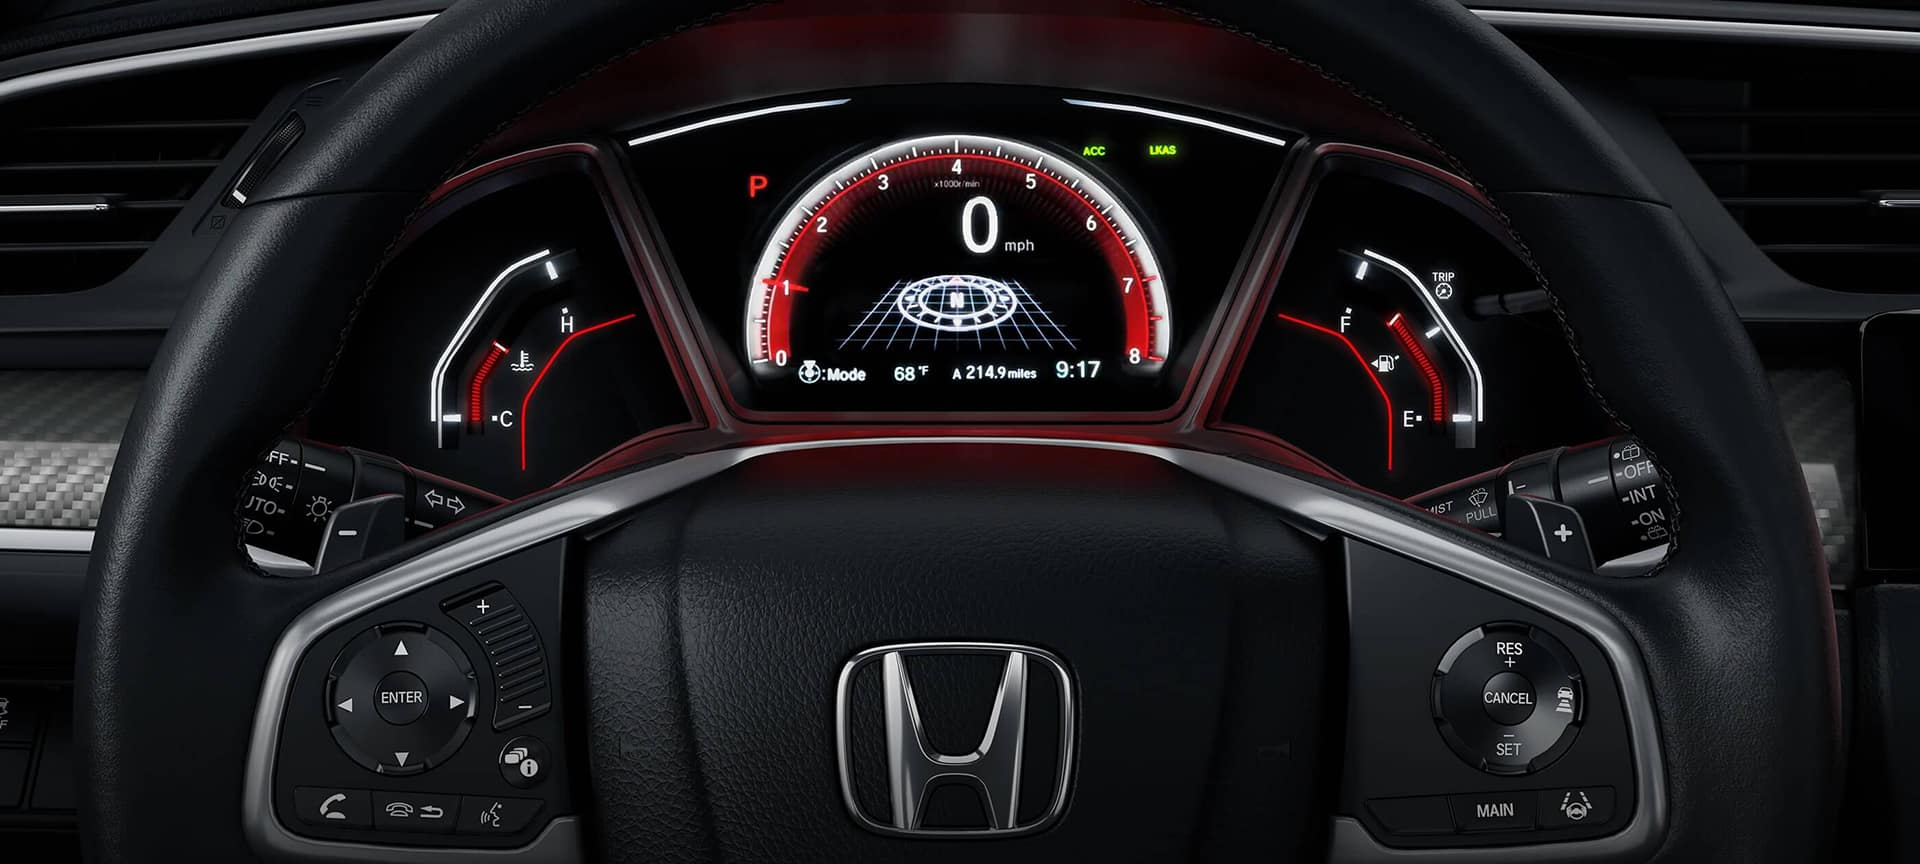 2019 Honda Civic Hatchback Interior Instrument Panel